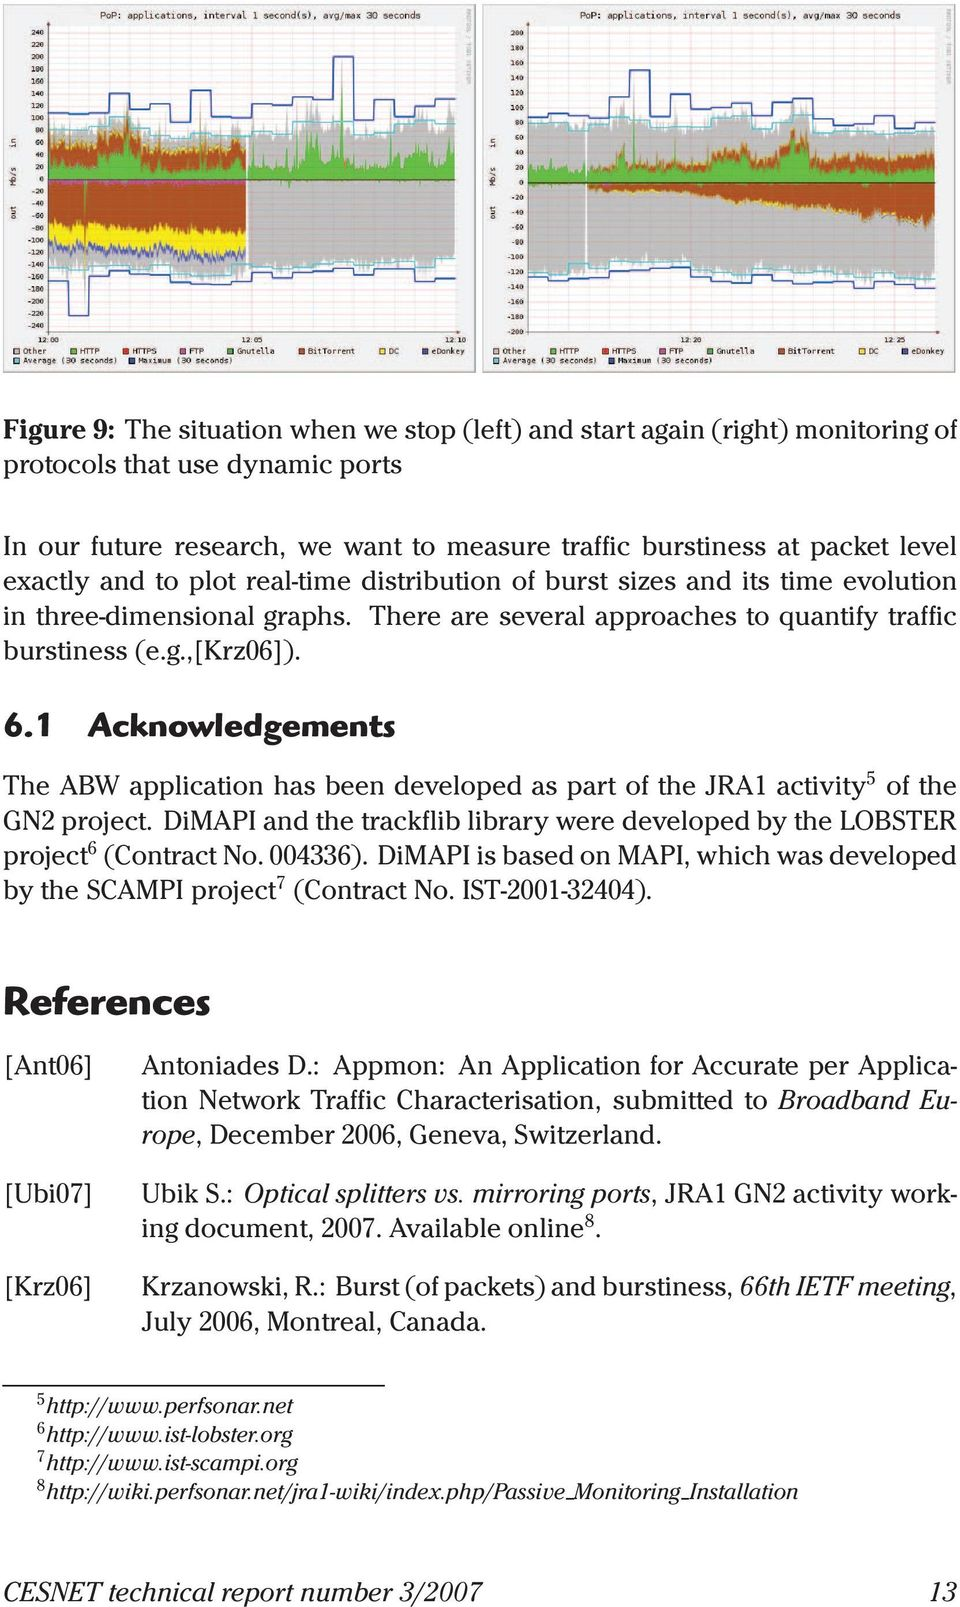 1 Acknowledgements The ABW application has been developed as part of the JRA1 activity 5 of the GN2 project. DiMAPI and the trackflib library were developed by the LOBSTER project 6 (Contract No.